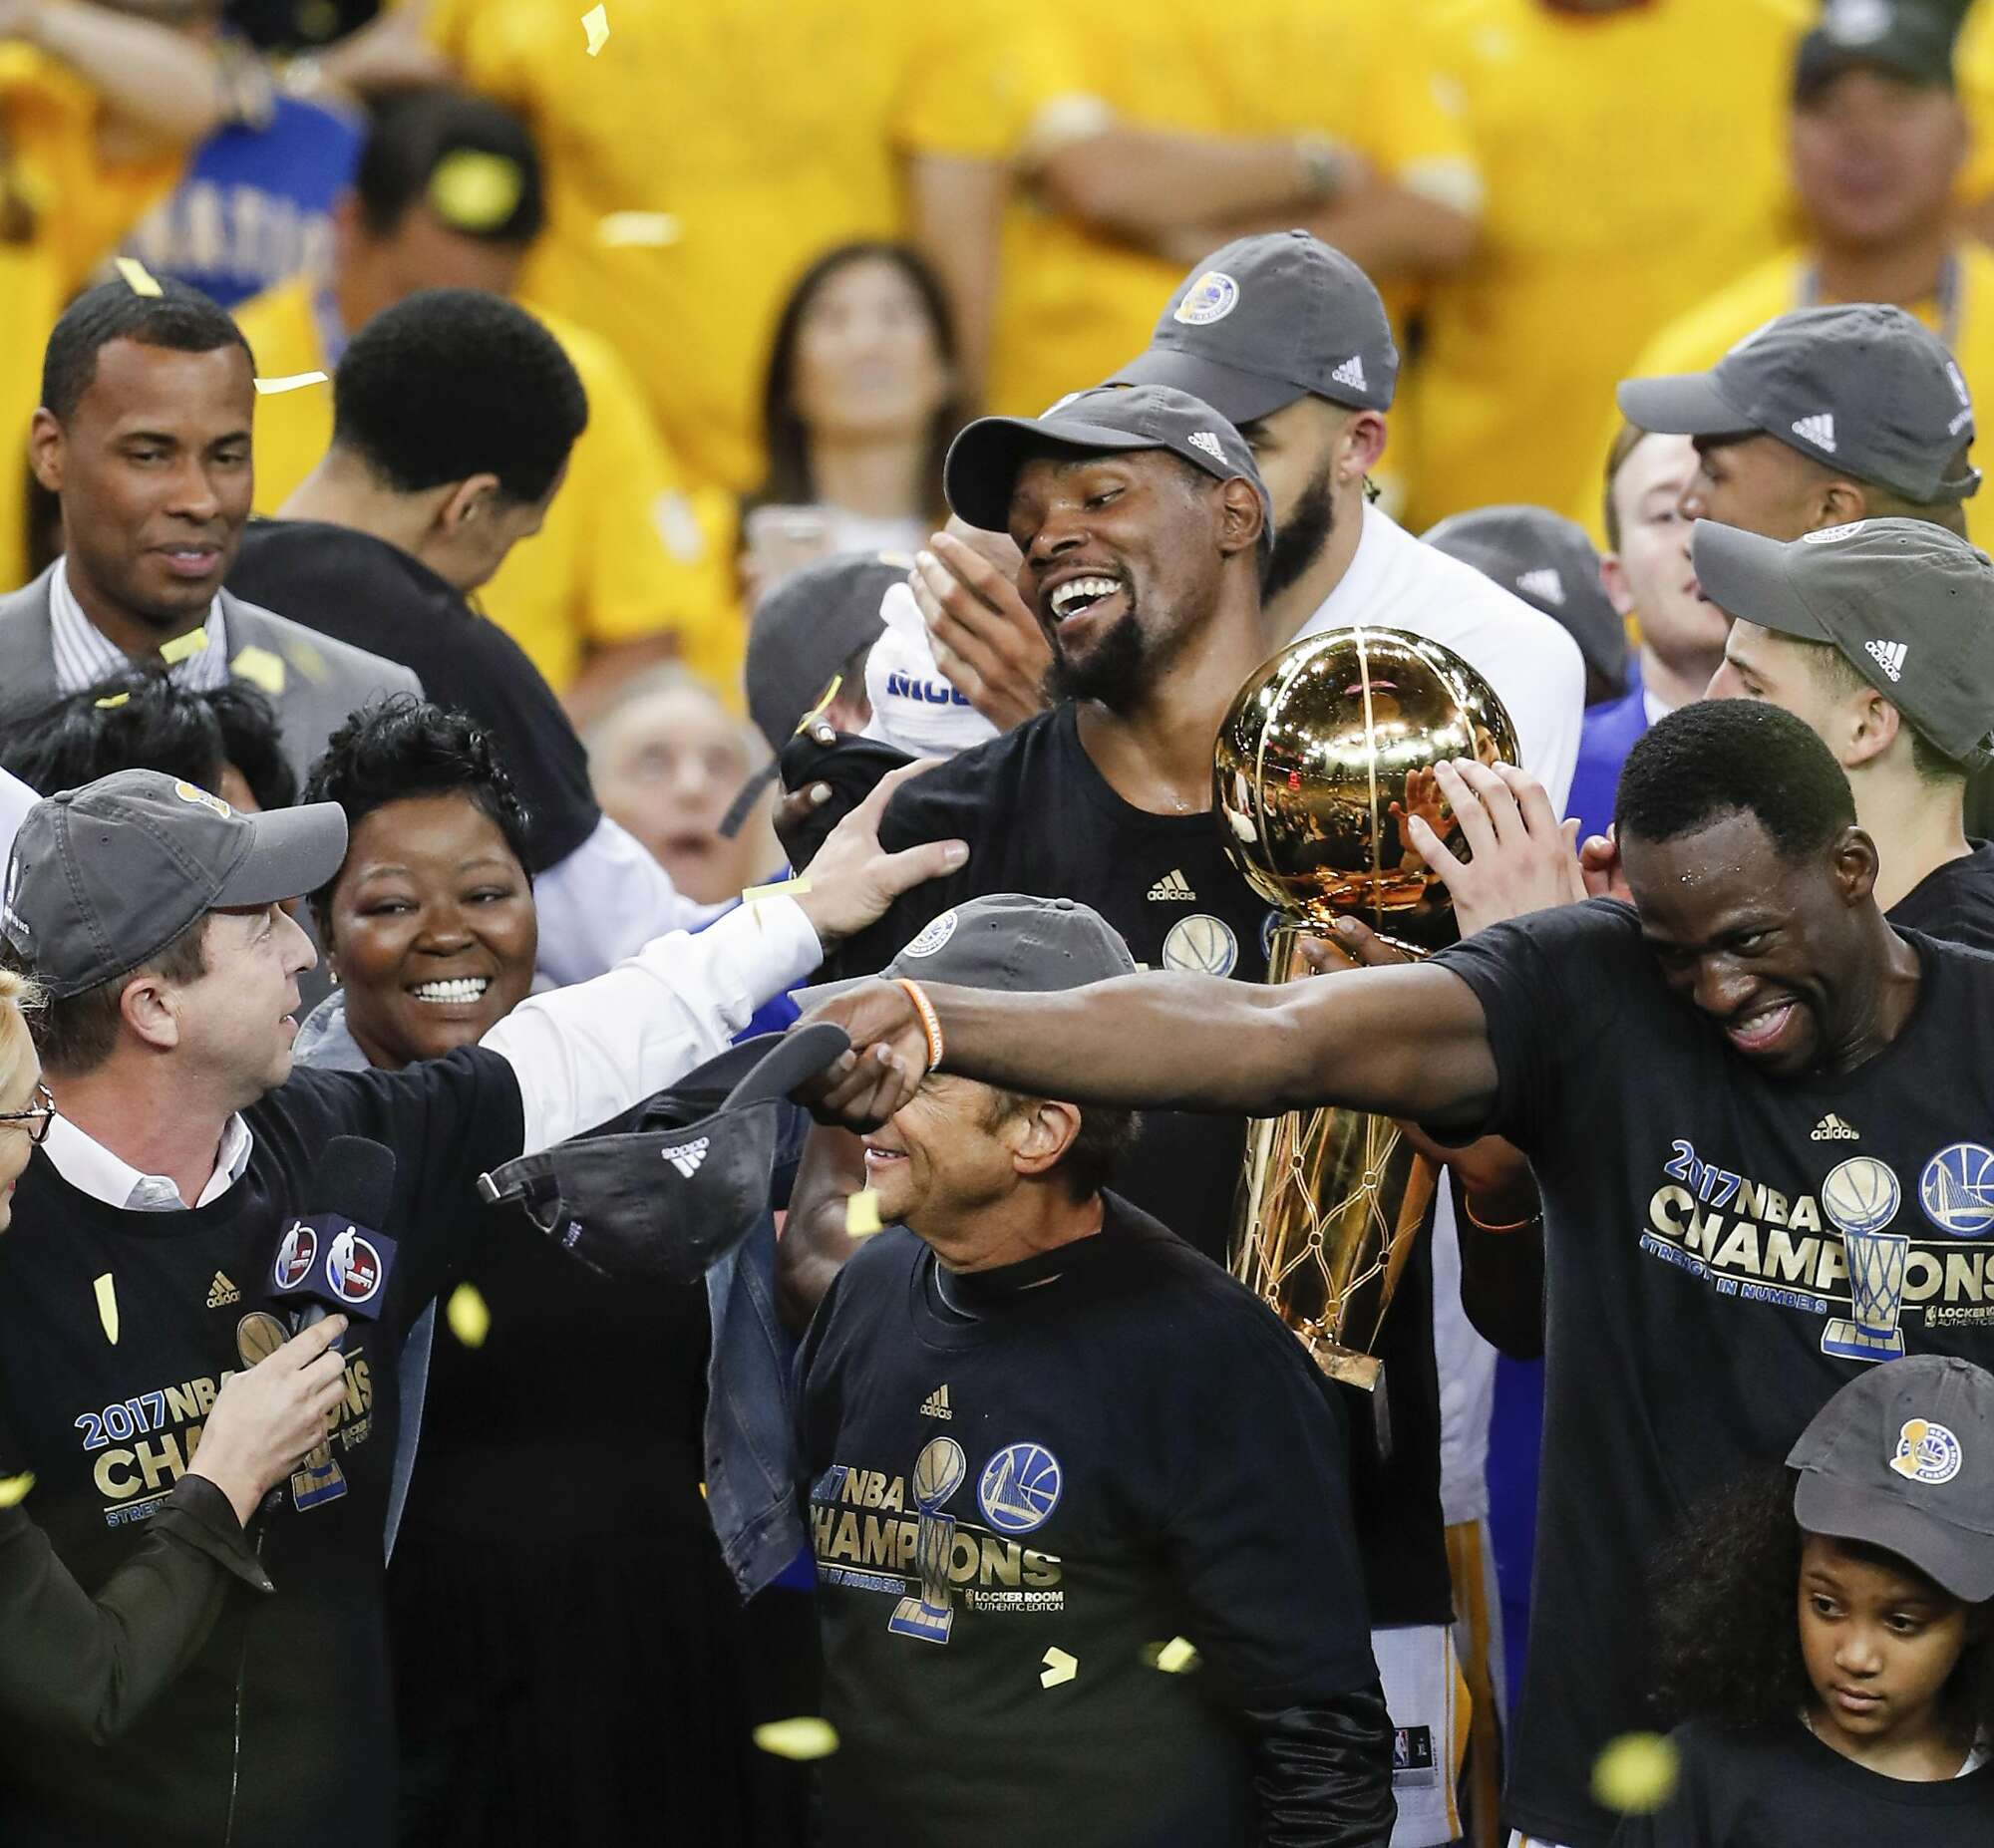 be64ca1e634 ... NBA Championship Trophy after the Warriors defeated the Cleveland  Cavaliers 129-120 in Game 5 to win the 2017 NBA Finals at Oracle Arena in  Oakland.